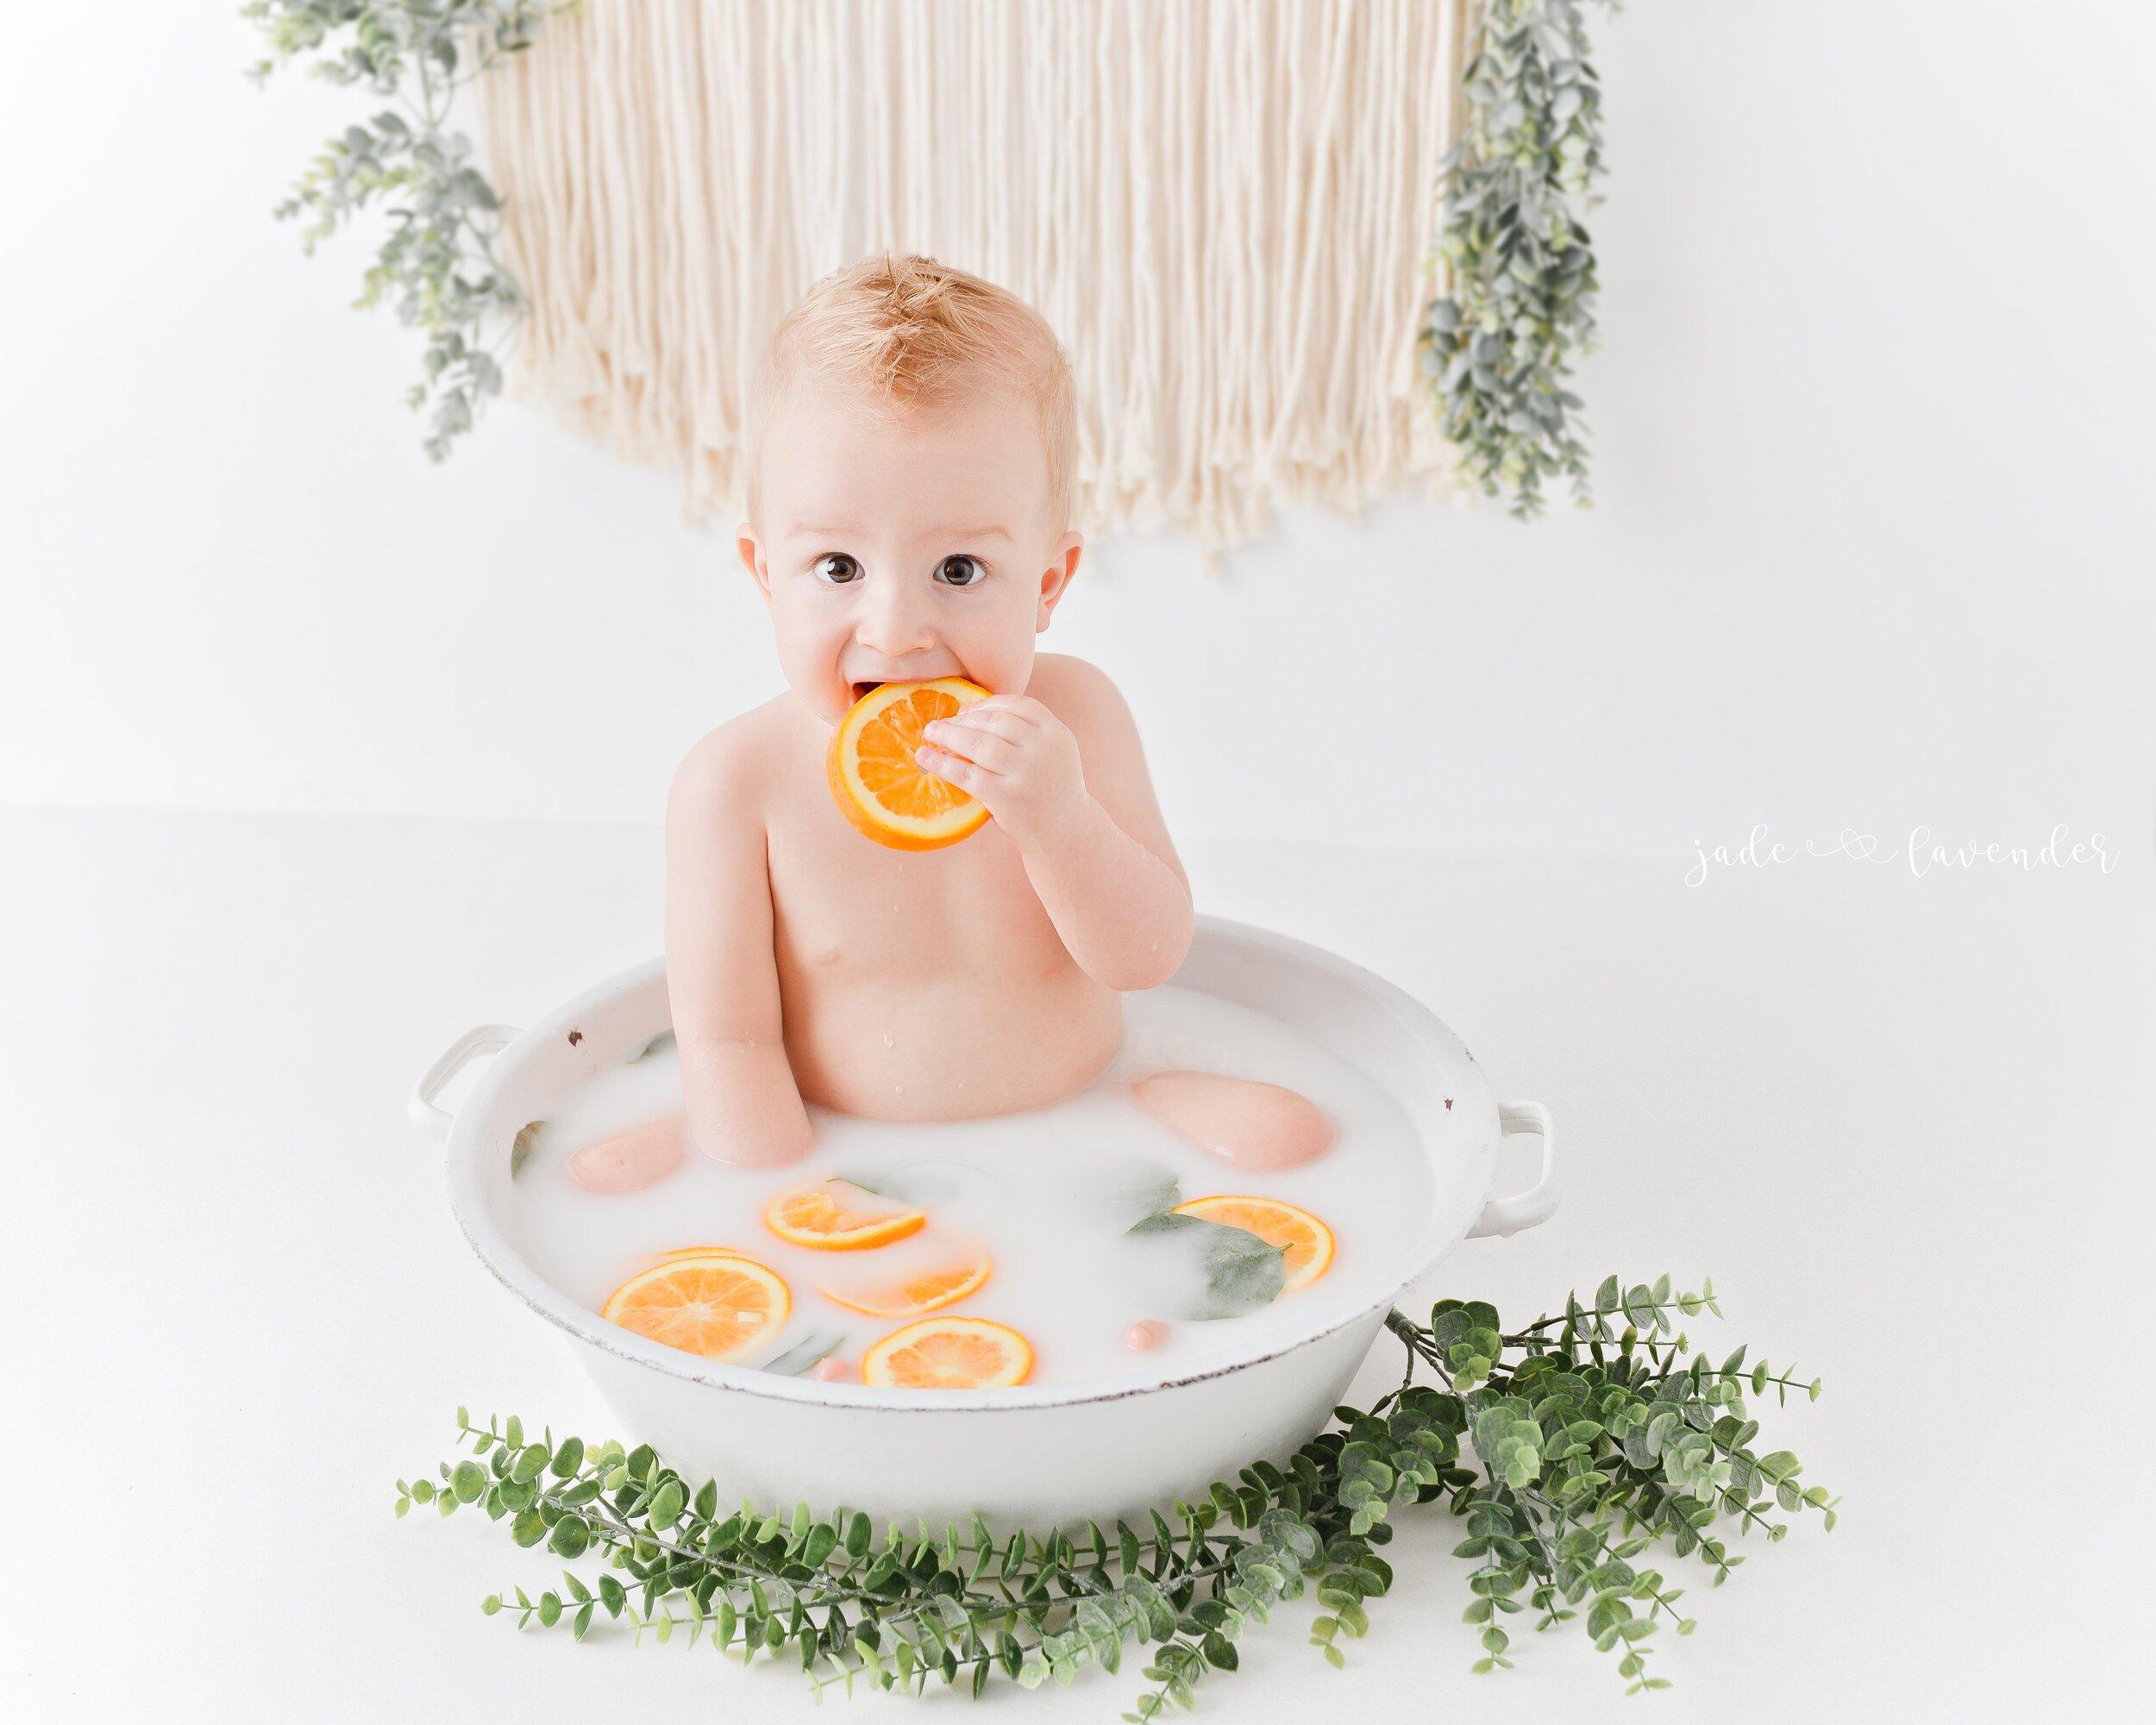 one-year-old-photos-milestone-photography-milk-bath-images-spokane-washington-newborn-photography (5 of 6).jpg